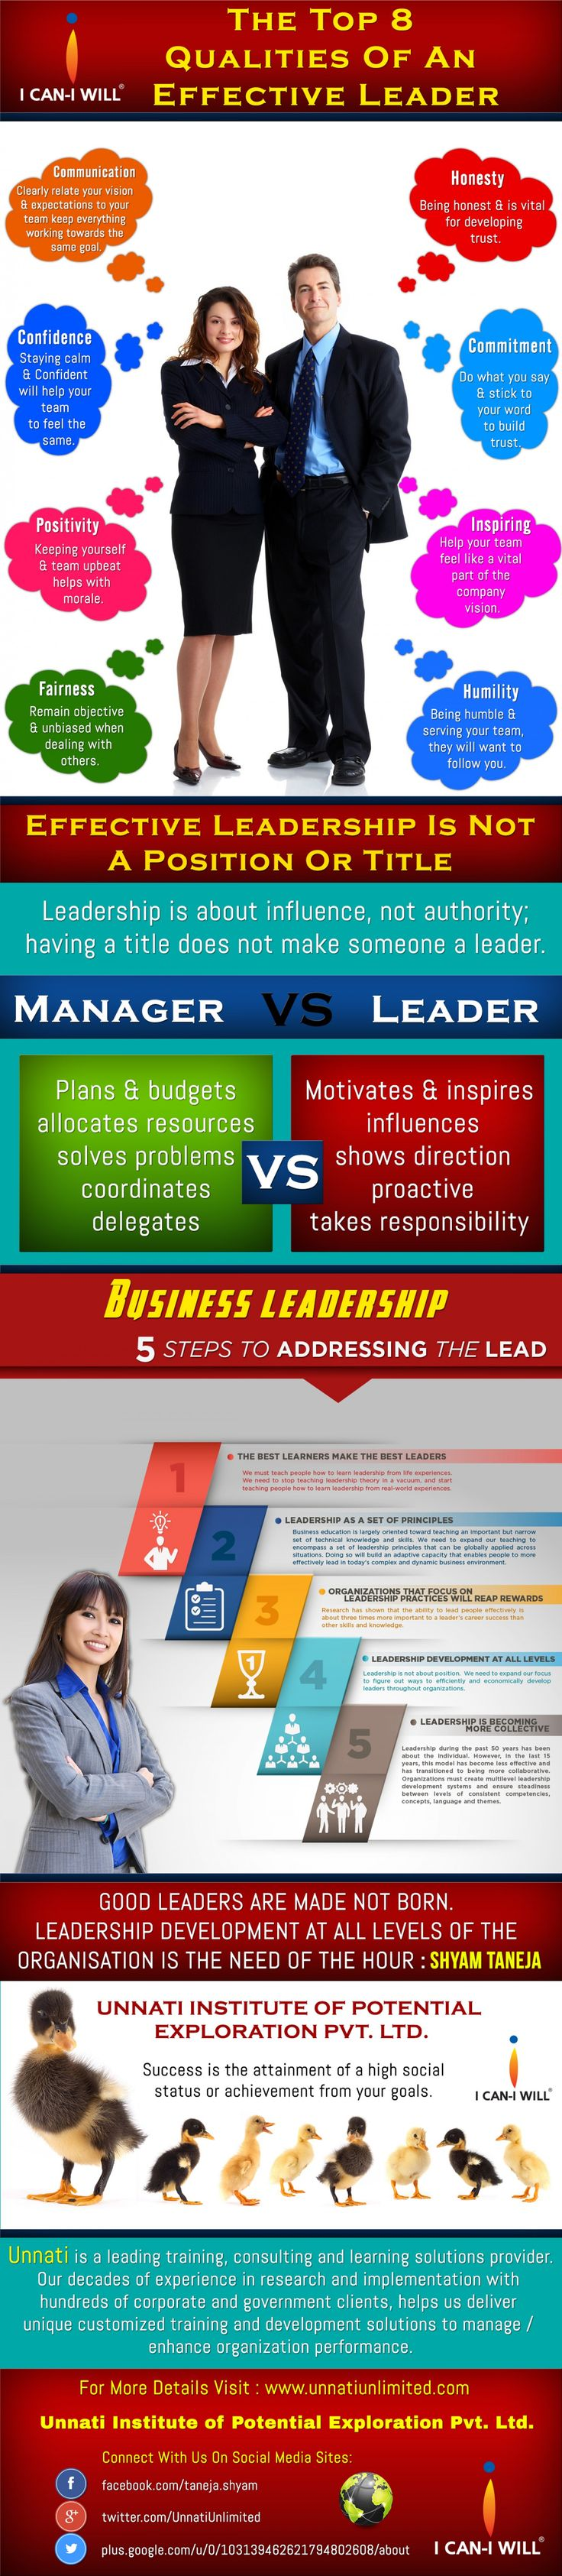 How To Be An Effective Leader Worksheet - The top 8 qualities of an effective leadership jamso supports business through goal setting